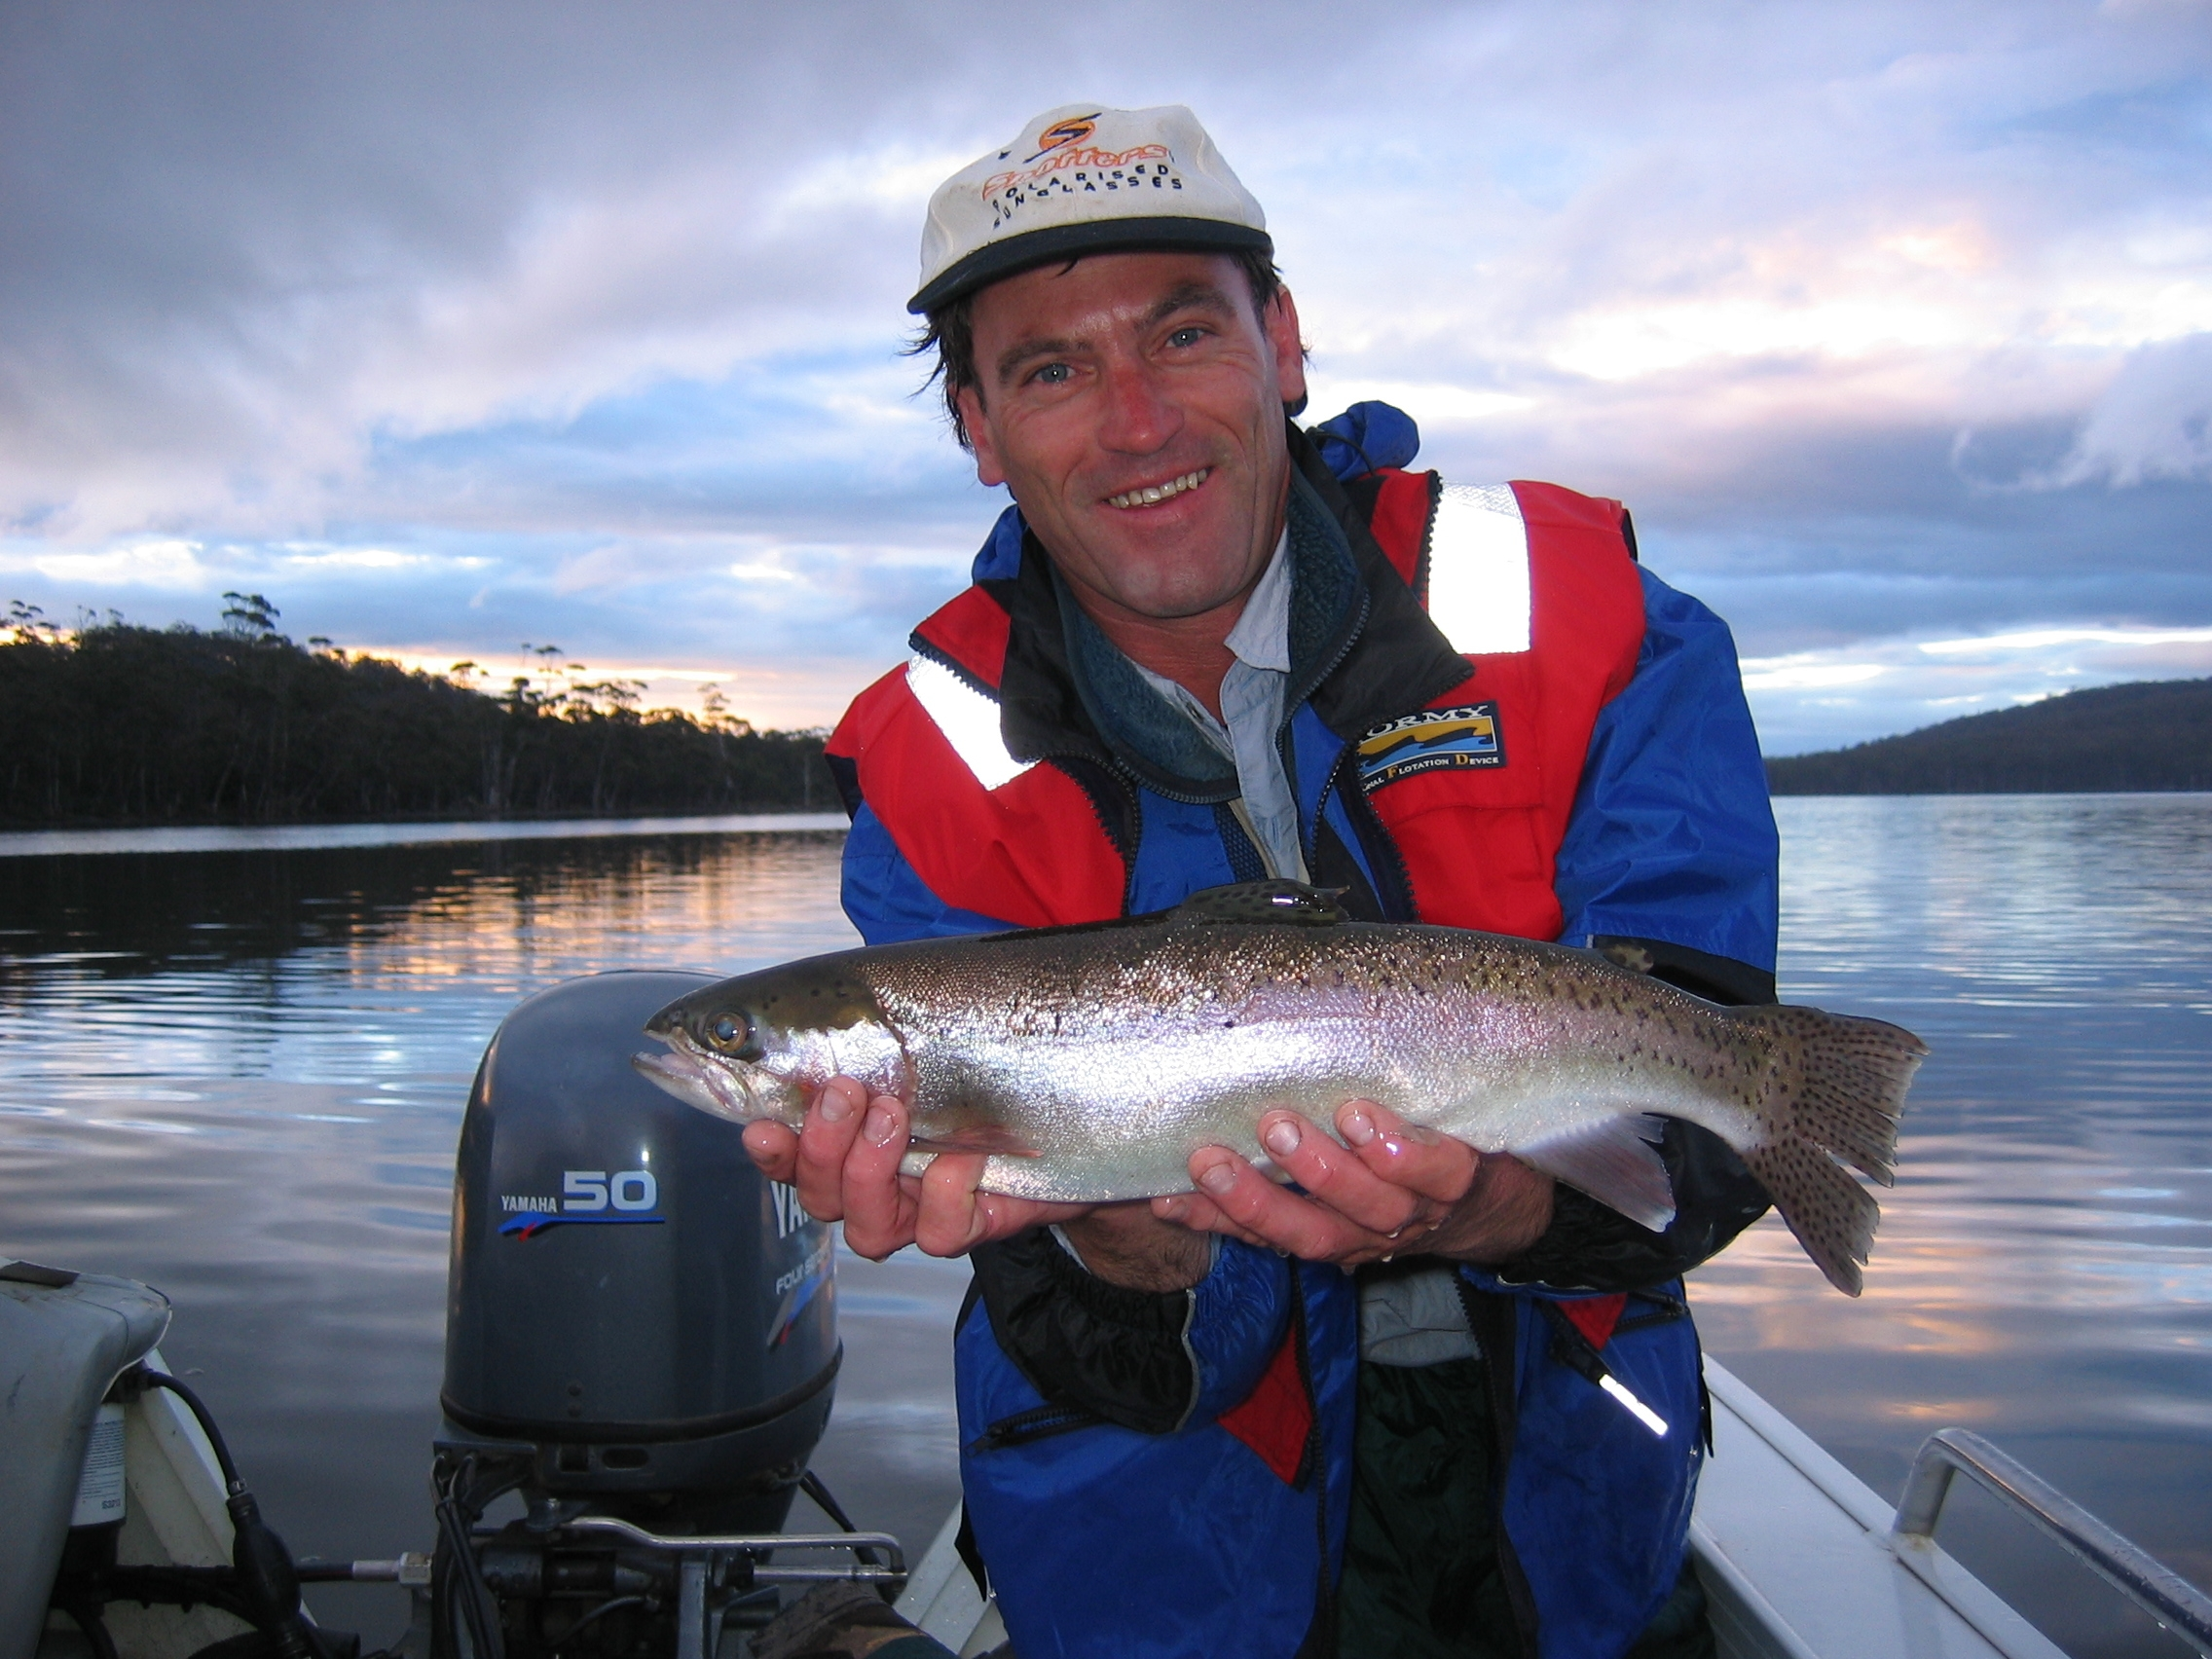 Gary France, head guide at Trout Territory